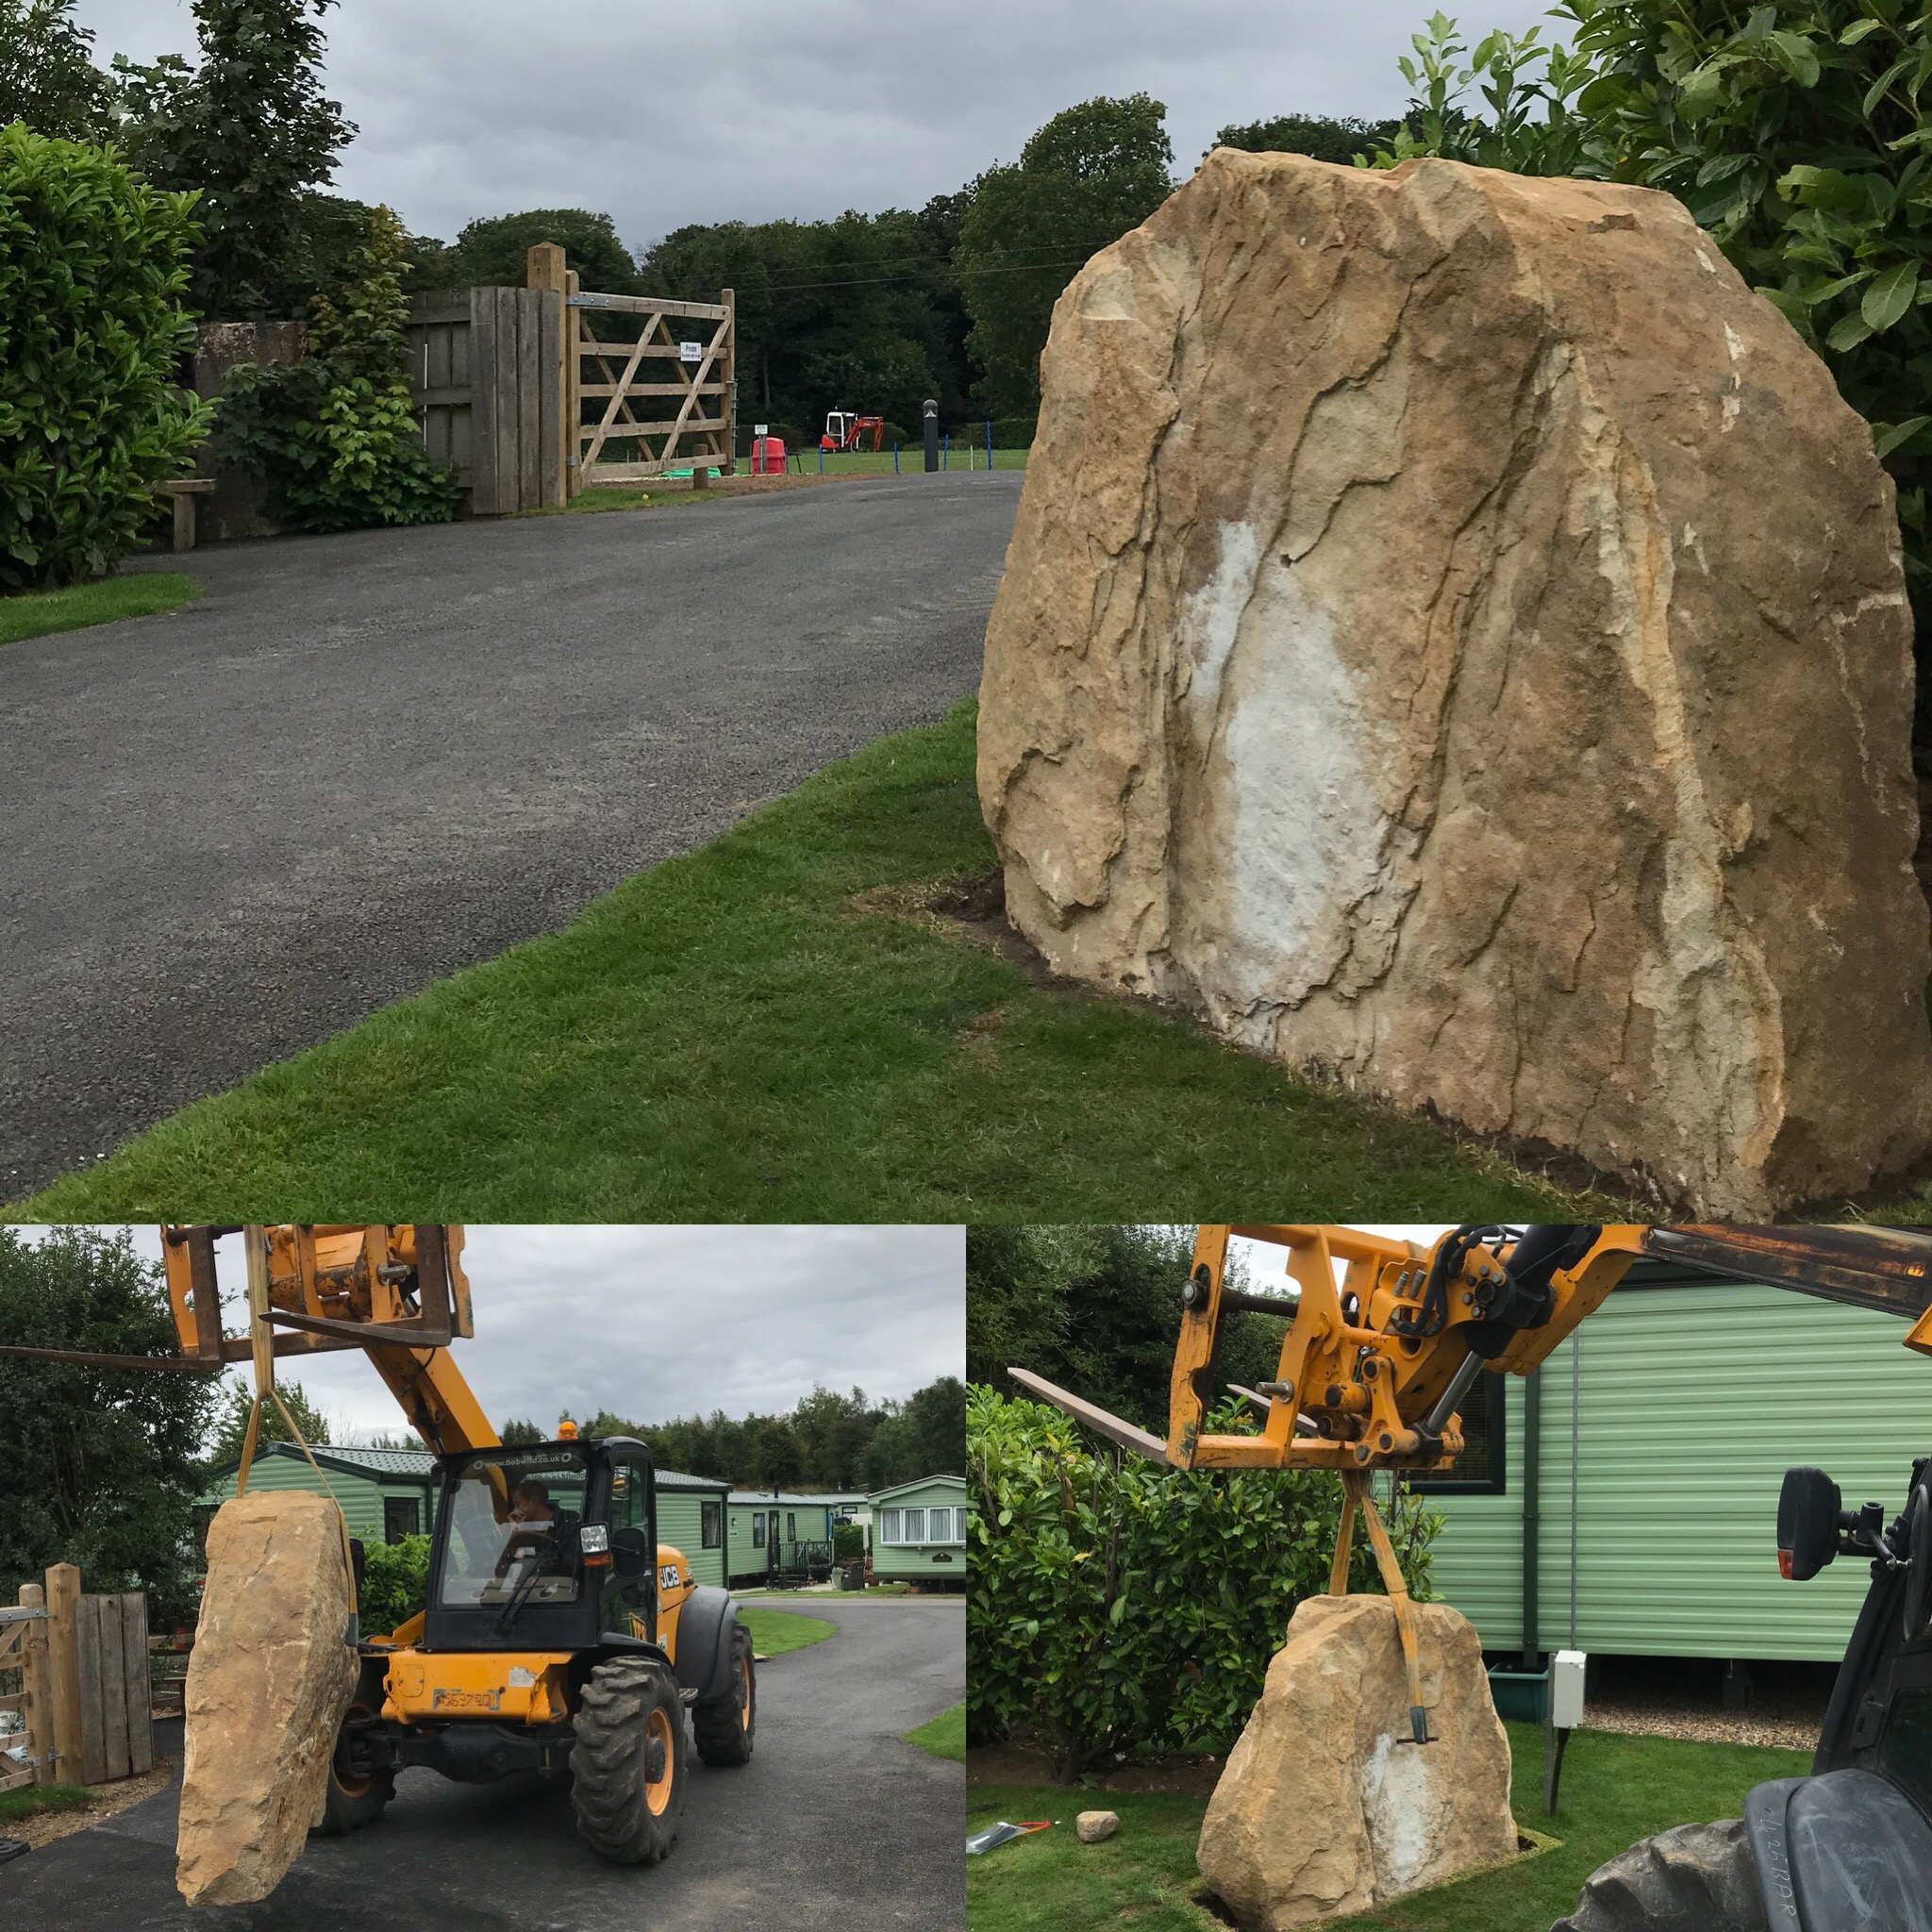 17th August - Park Field Entrance Stone